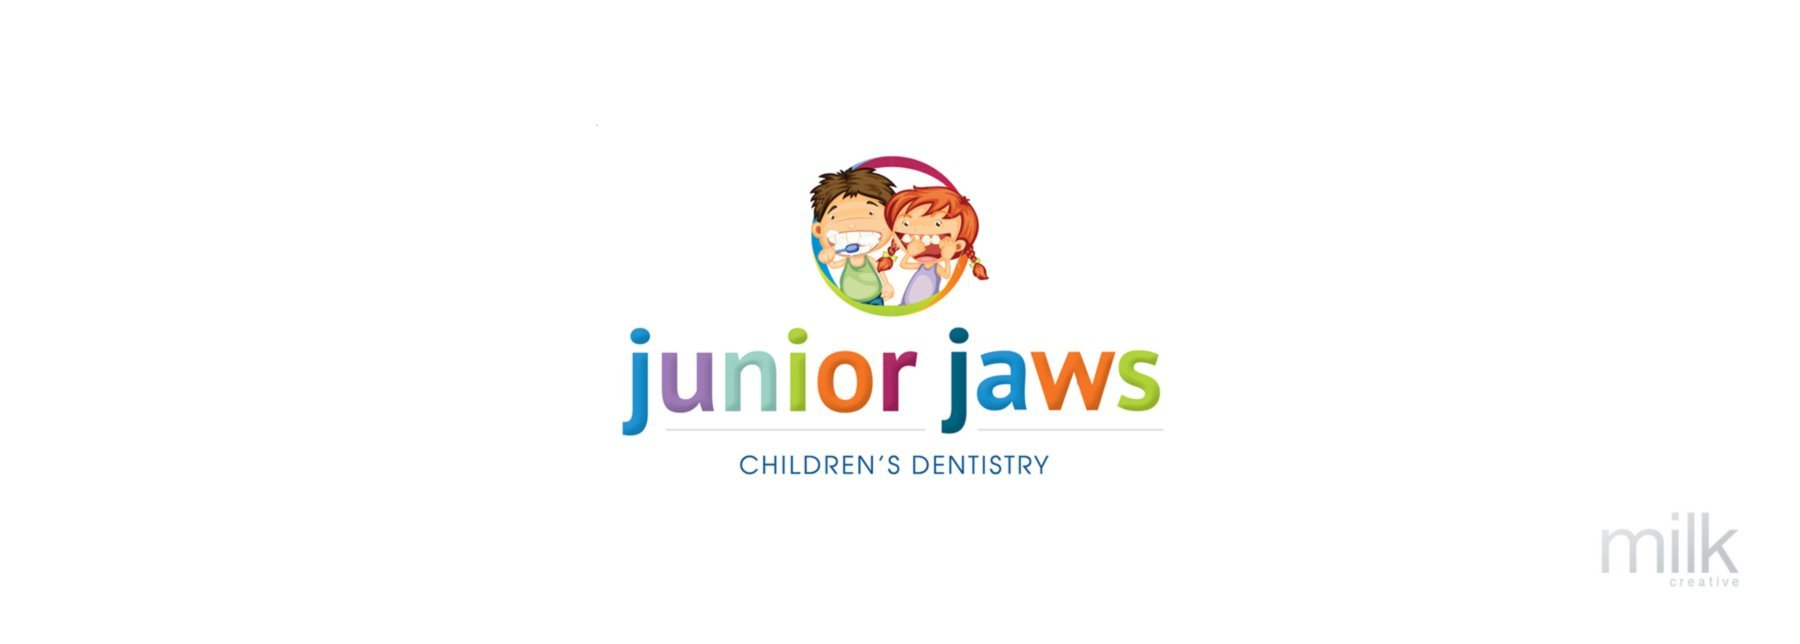 Junior Jaws – Childrens Dentistry – Logo Design